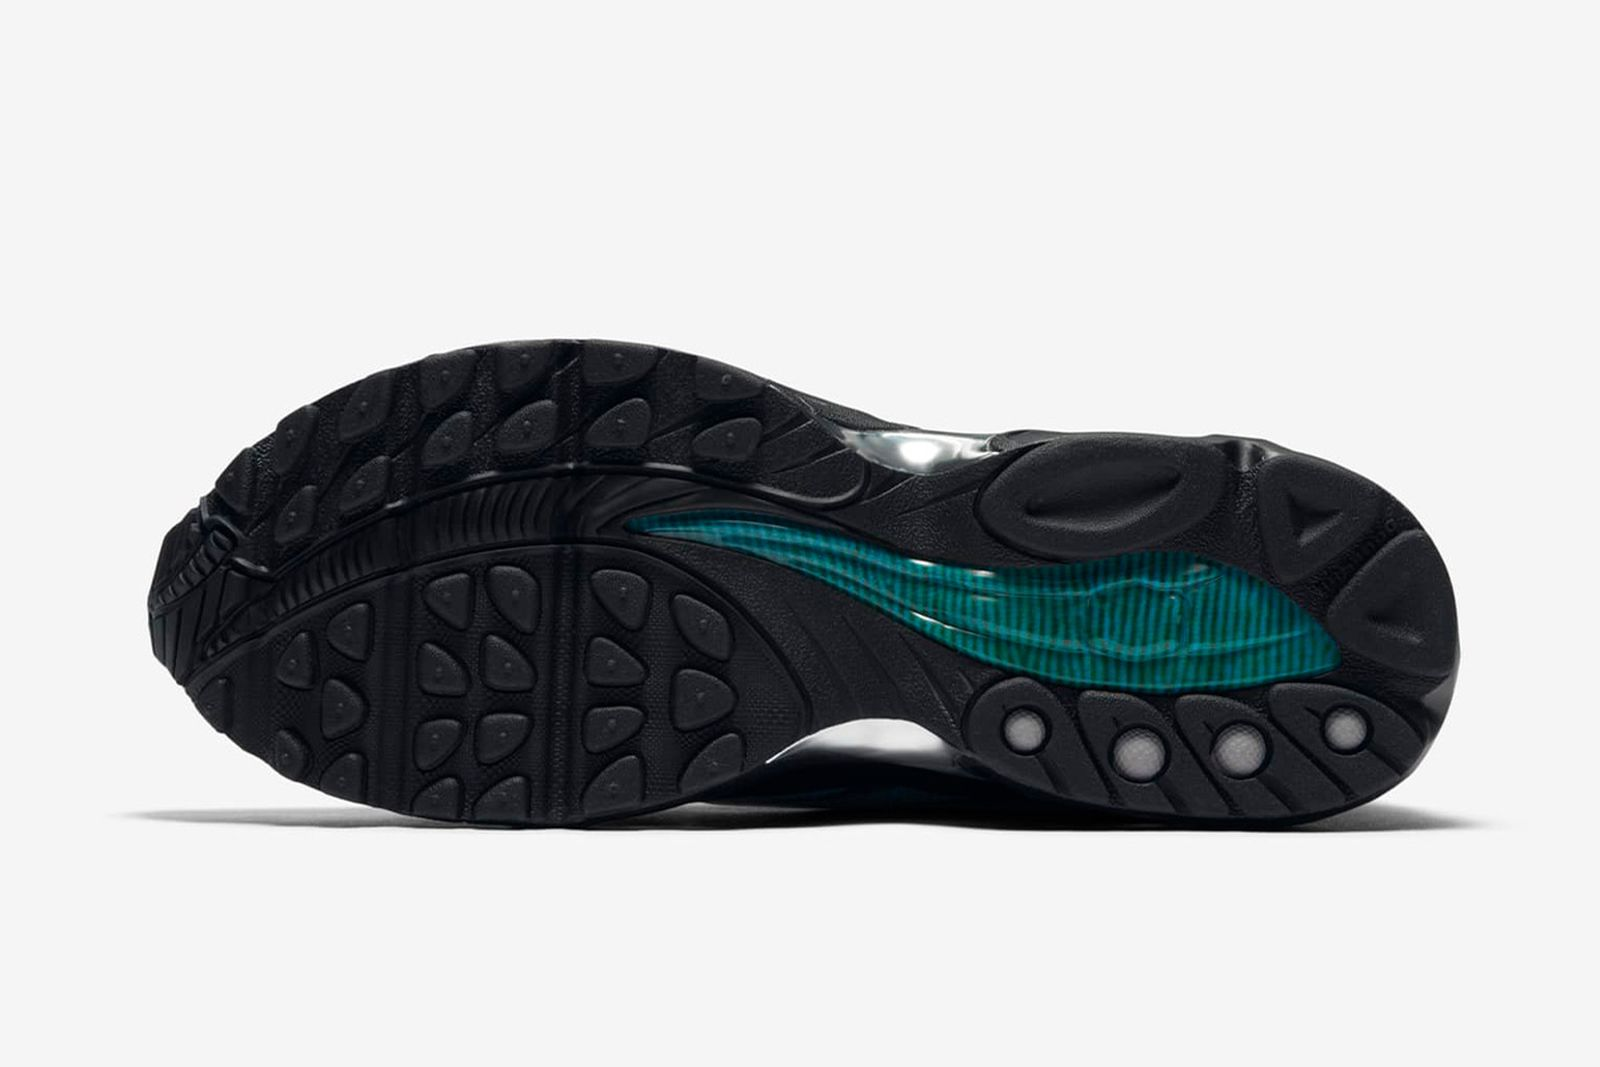 skepta-nike-air-max-tailwind-5-release-date-price-official-02